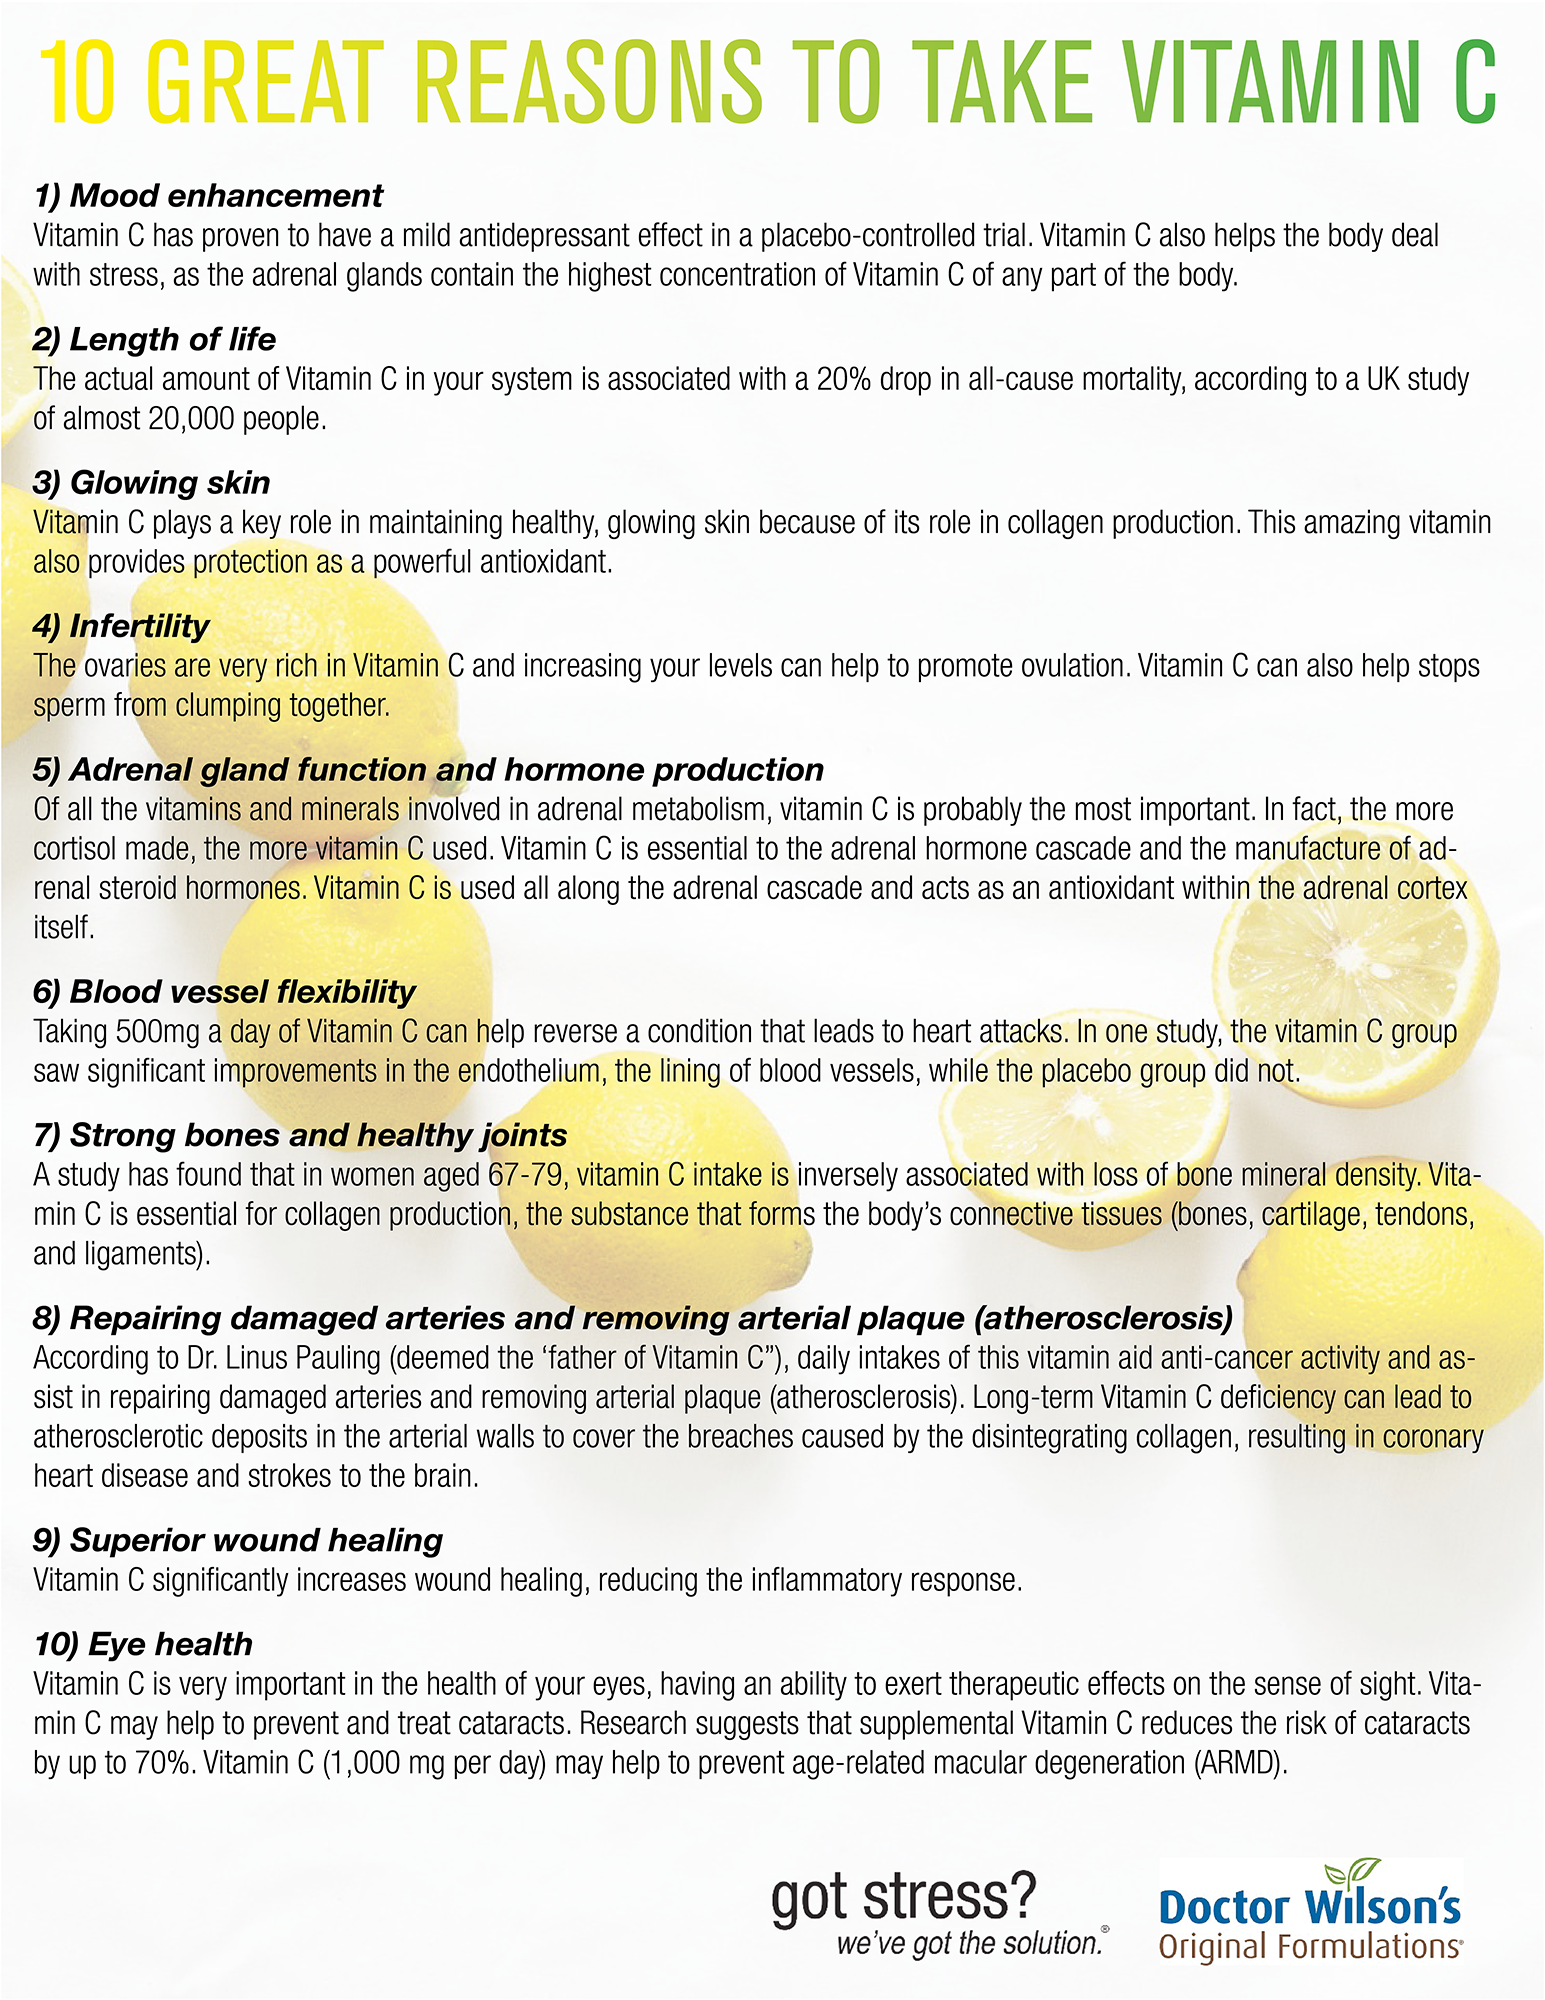 there are many great reasons to take vitamin c, but here are 10 you